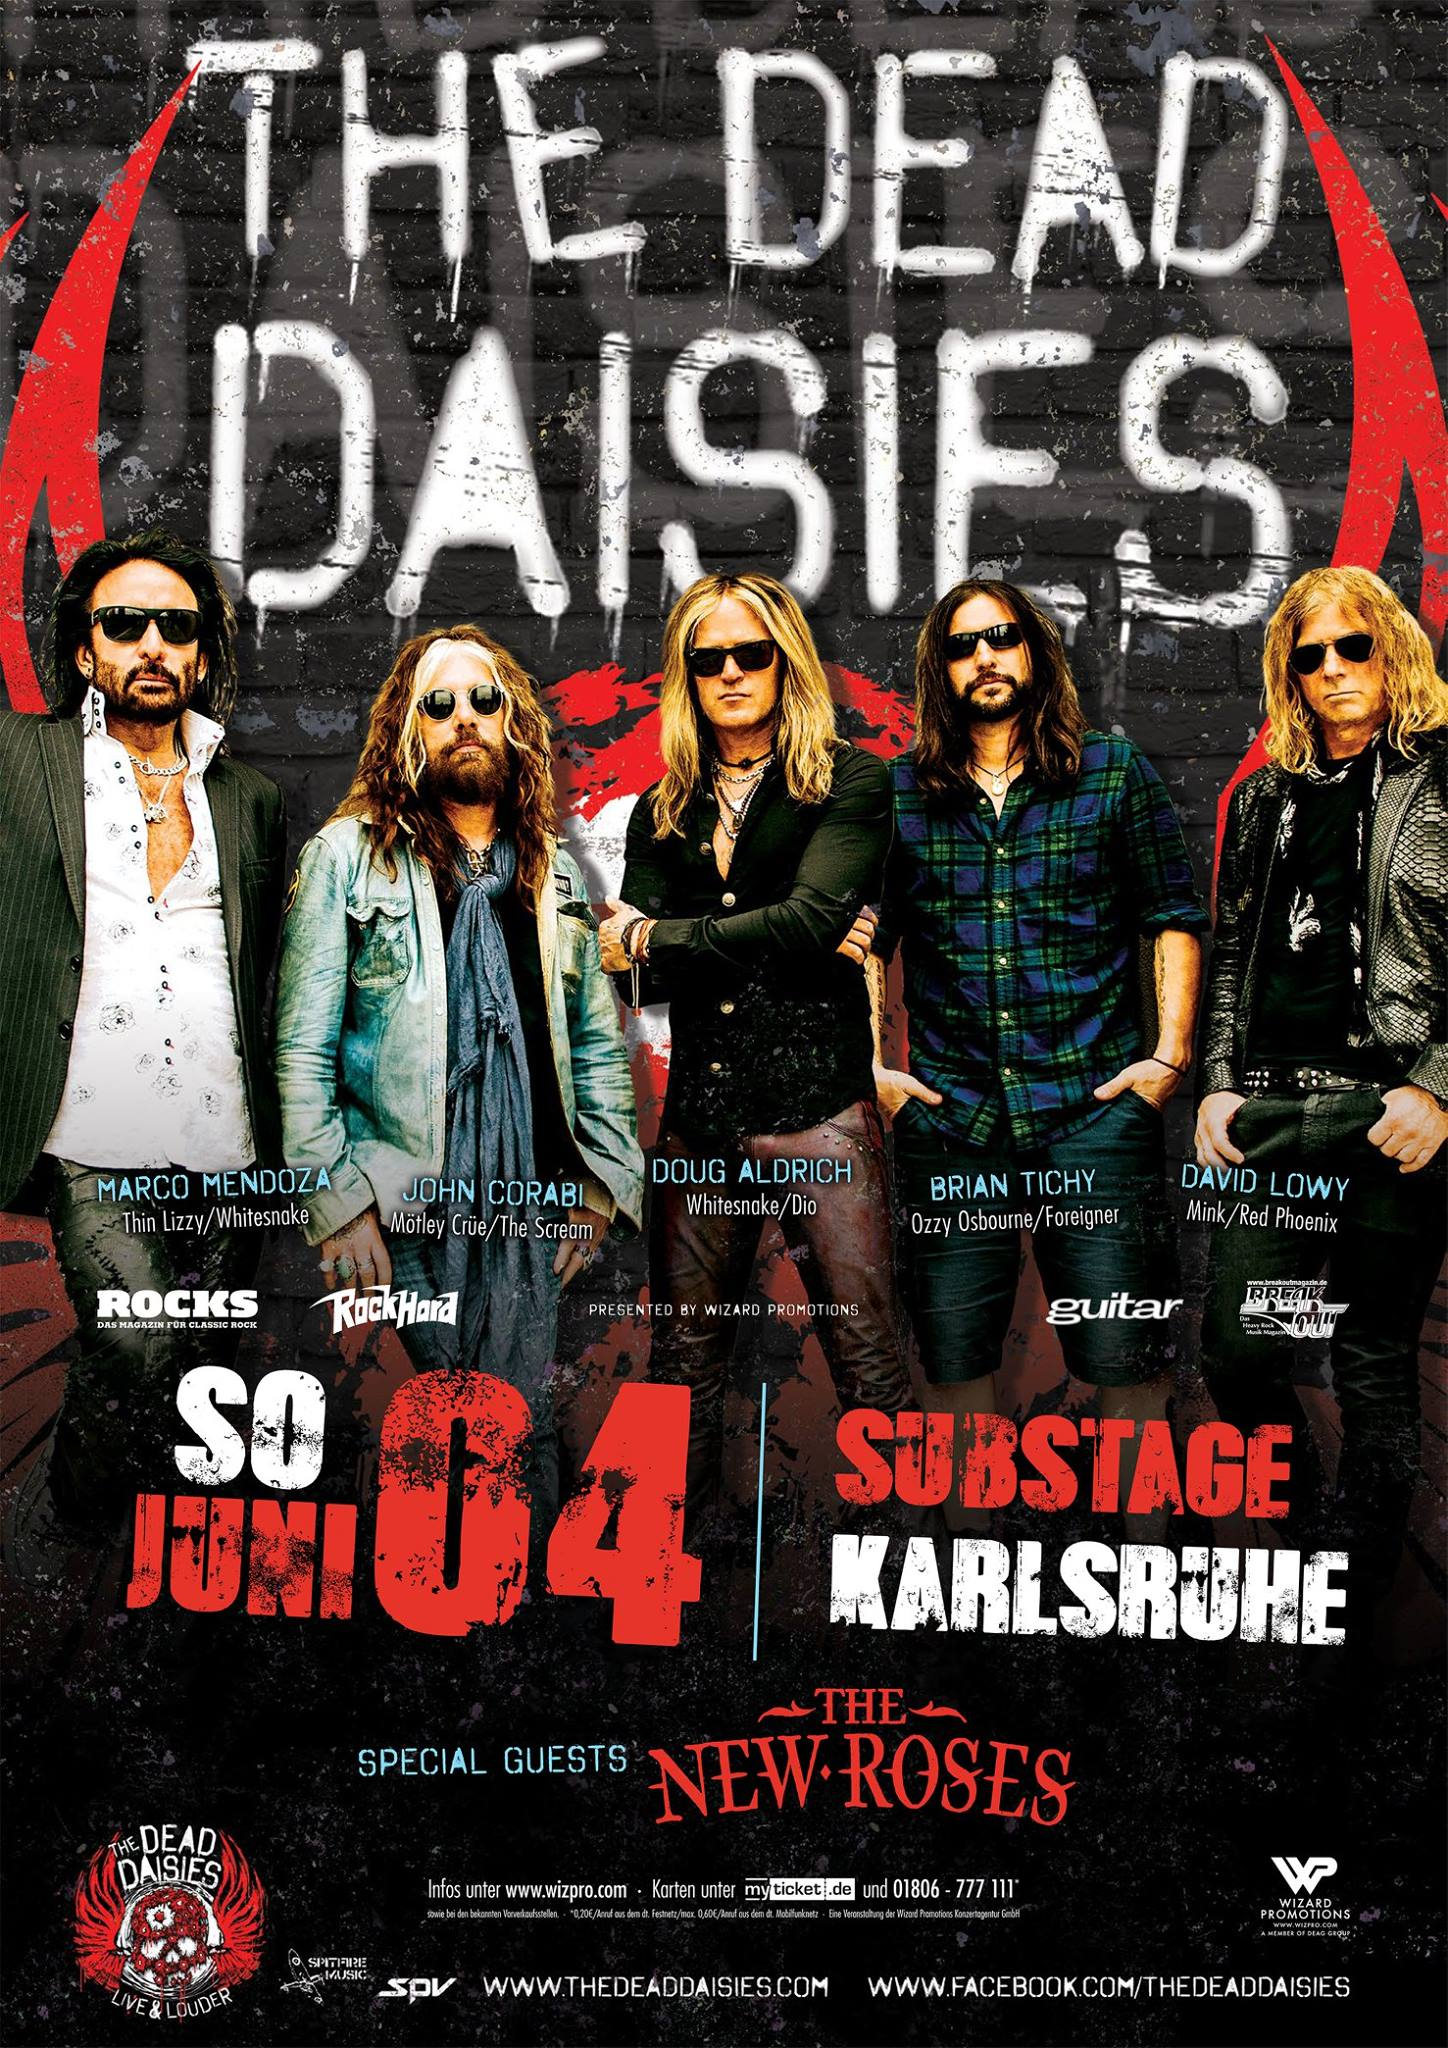 The Dead Daisies & The New Roses, 04.06.17, Substage, Karlsruhe